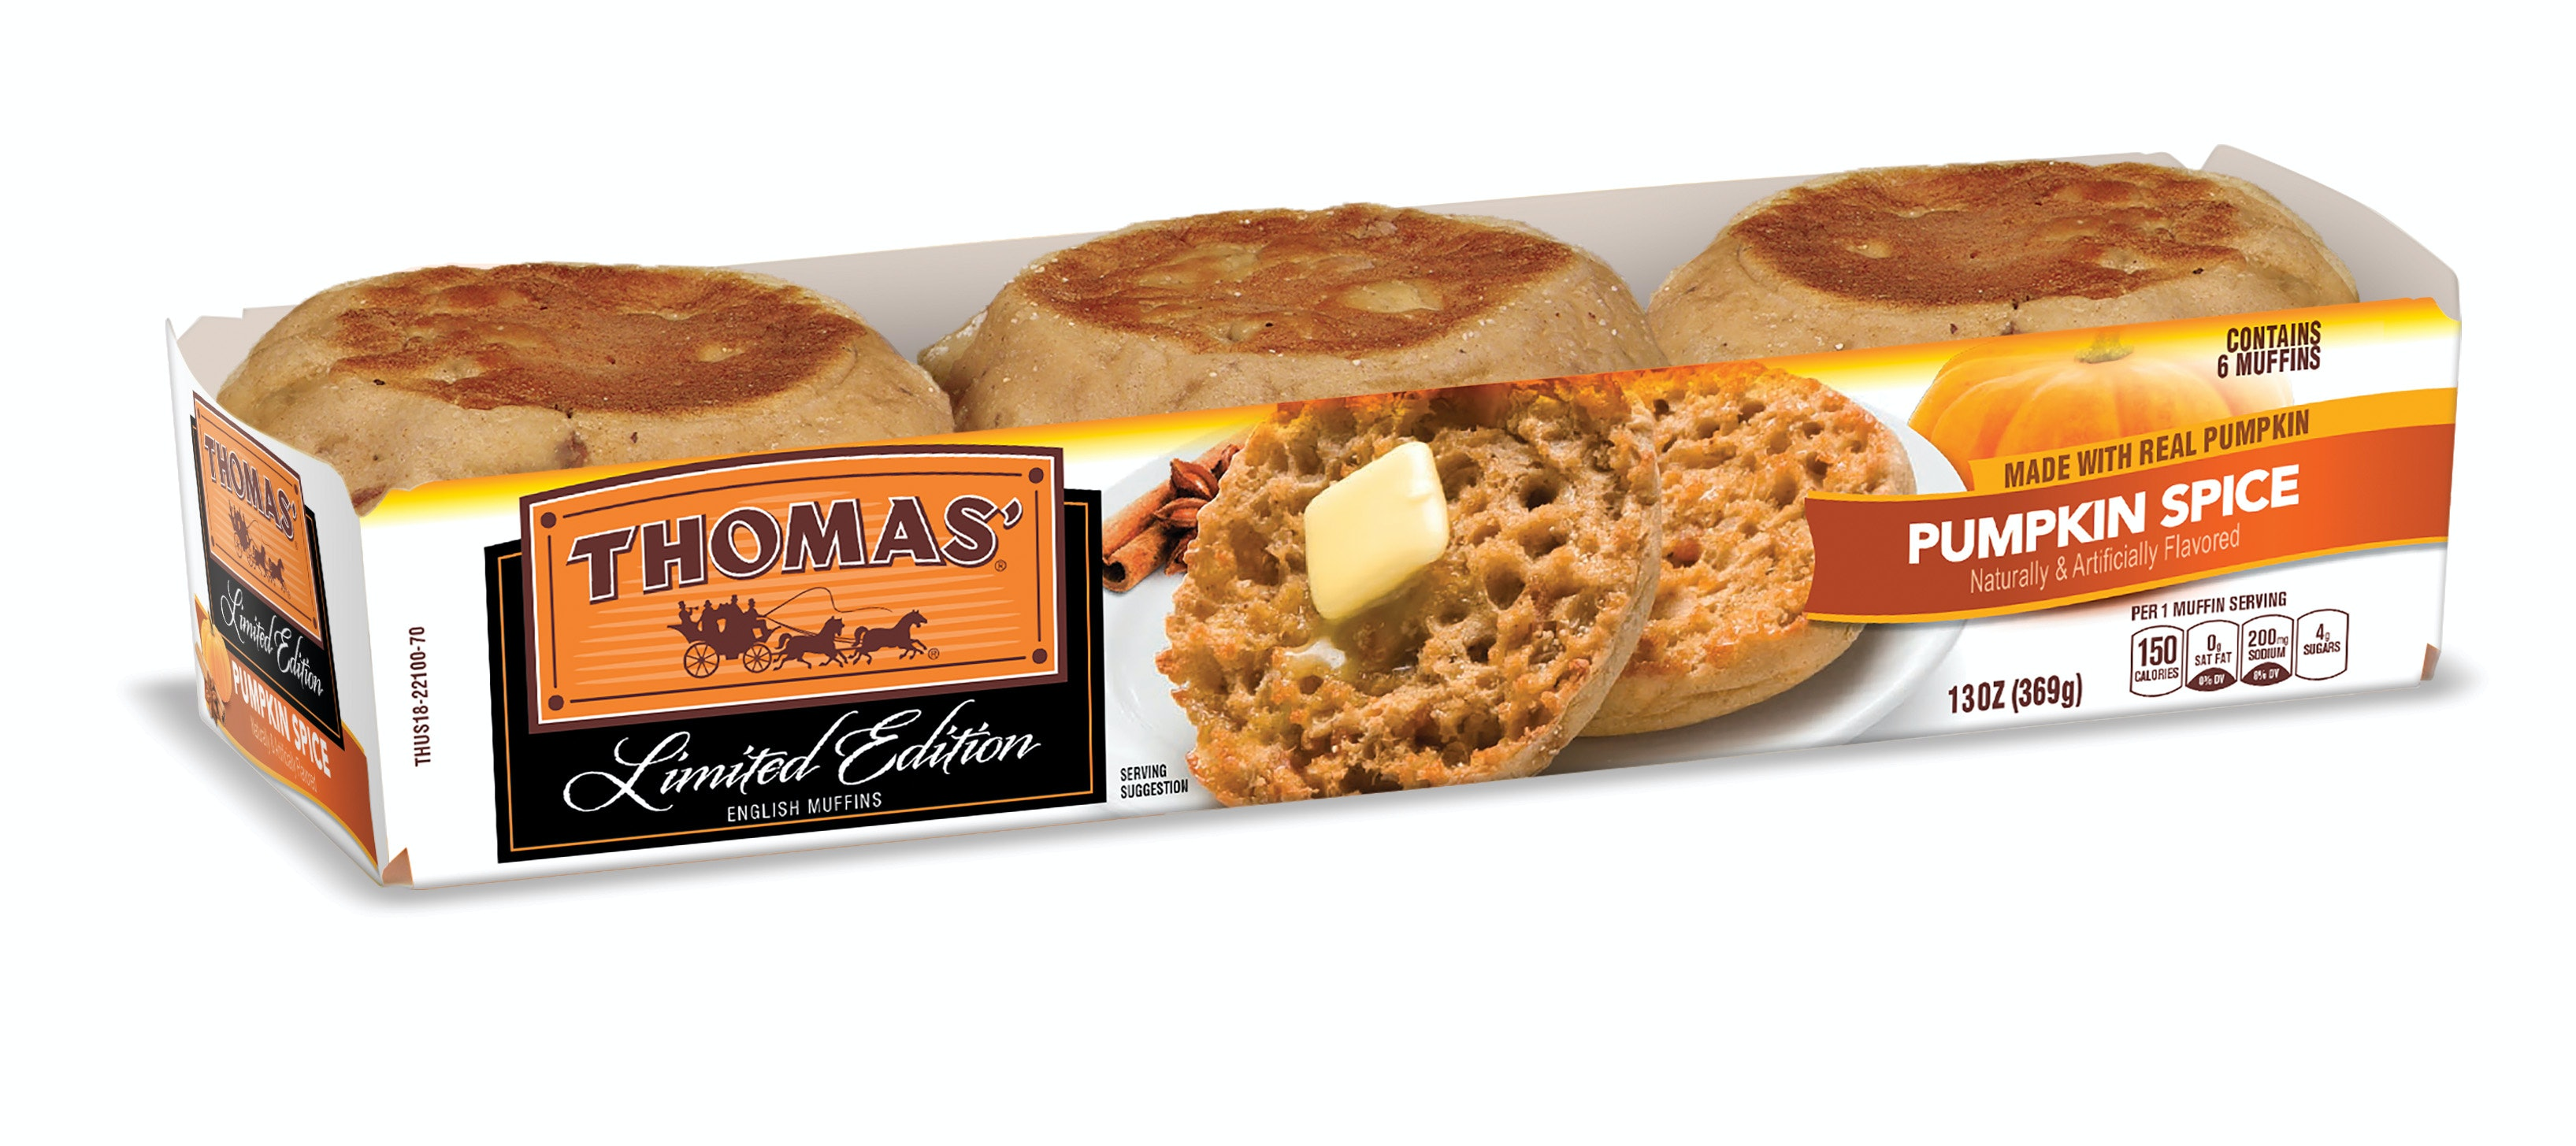 thomas' pumpkin spice english muffins are back for a limited time